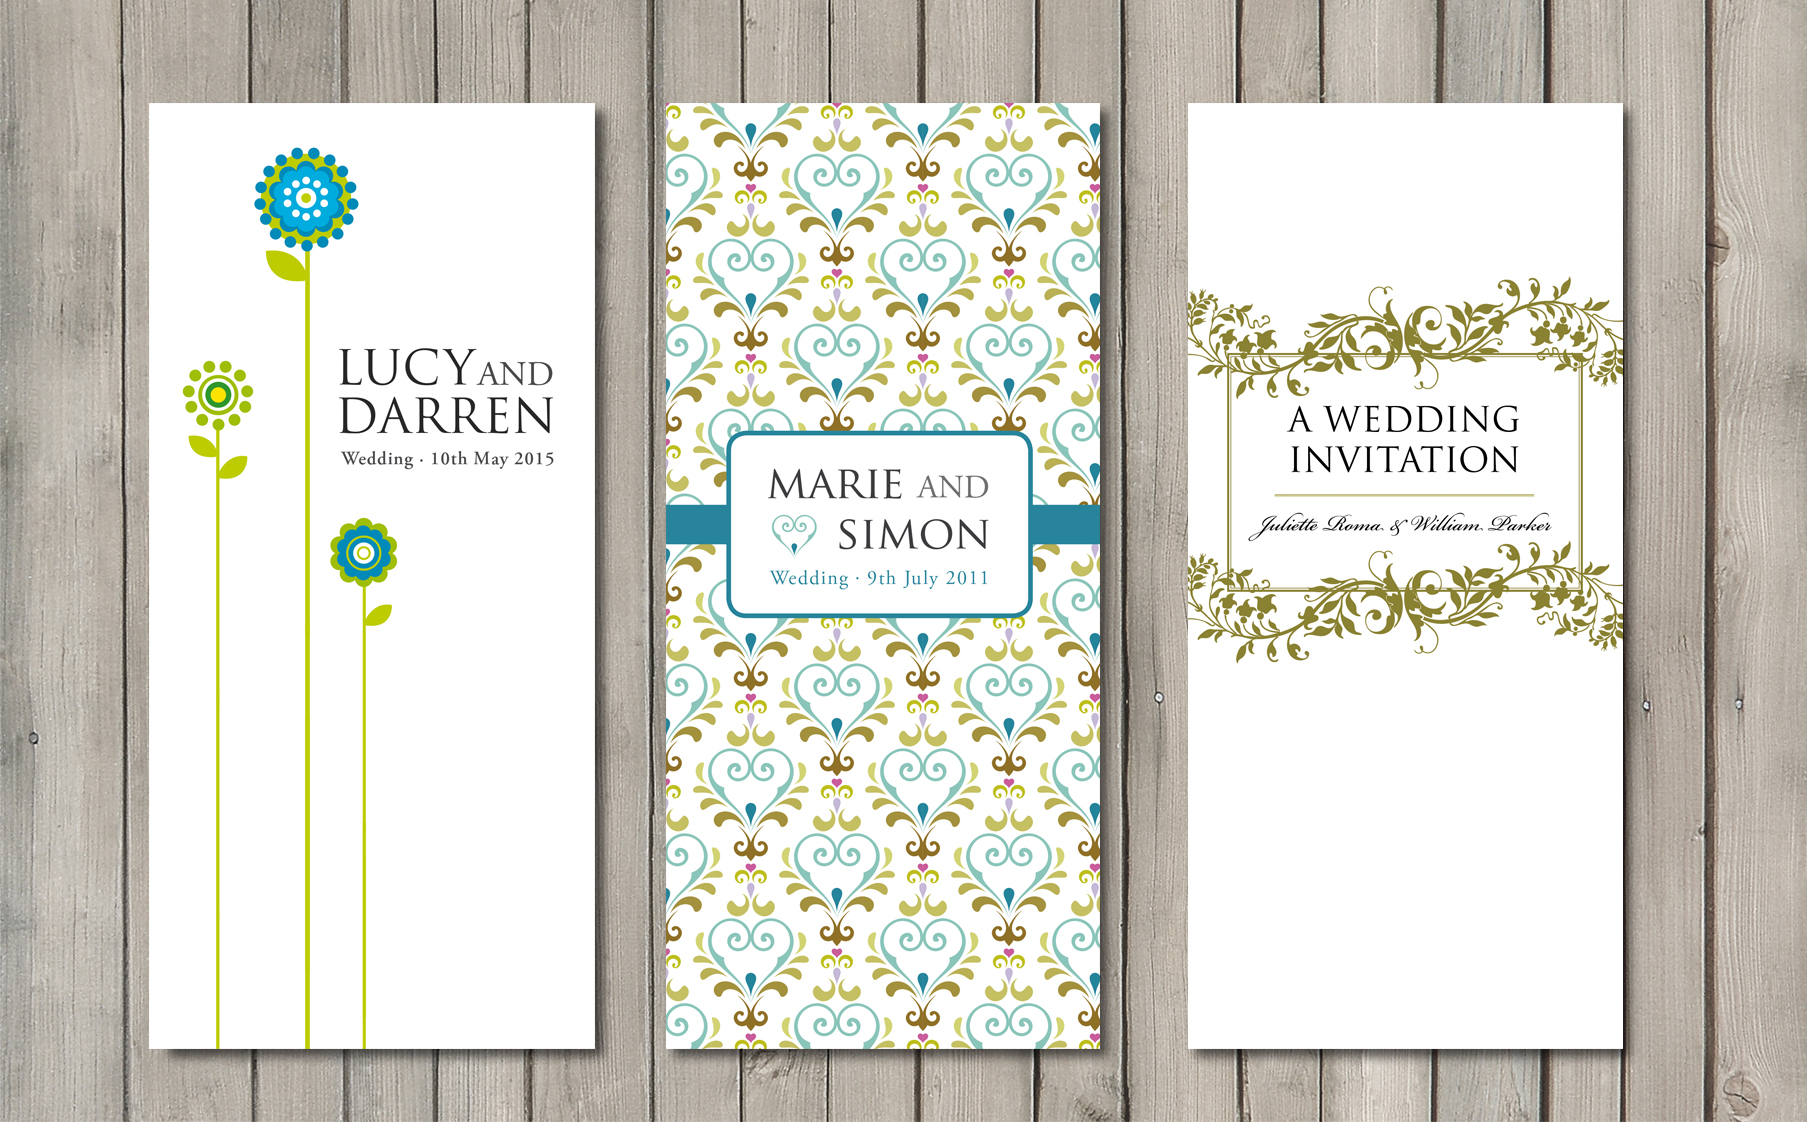 Wedding invitations from £1.25 | Paperchain Wedding Stationery